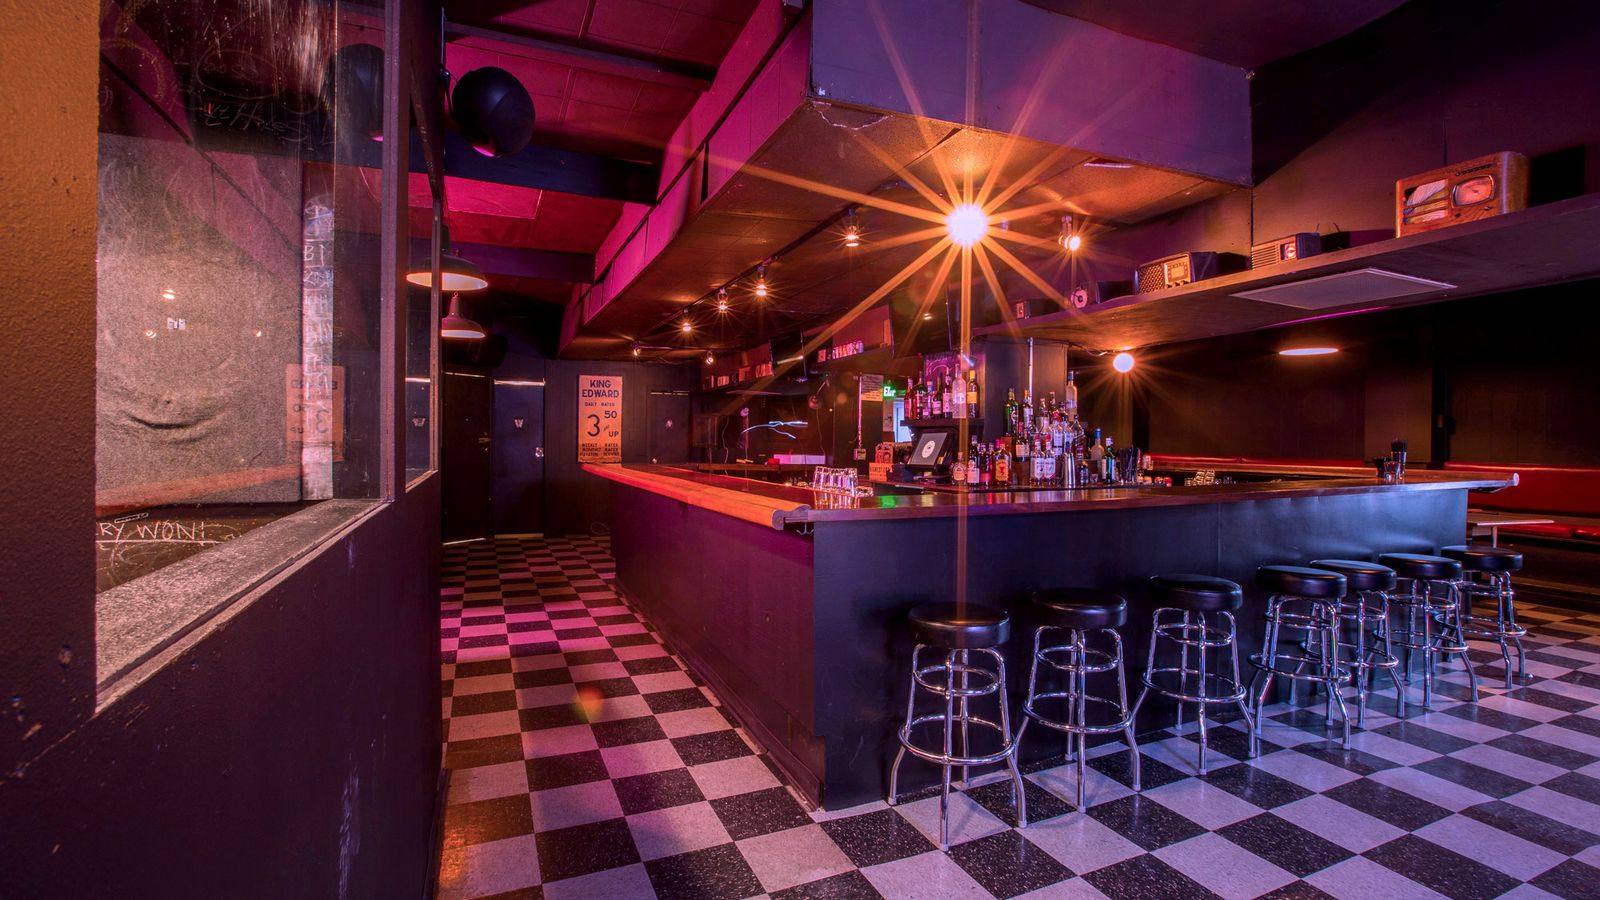 King eddy saloon cleans up and gets roughed up at the same for Acme salon san francisco